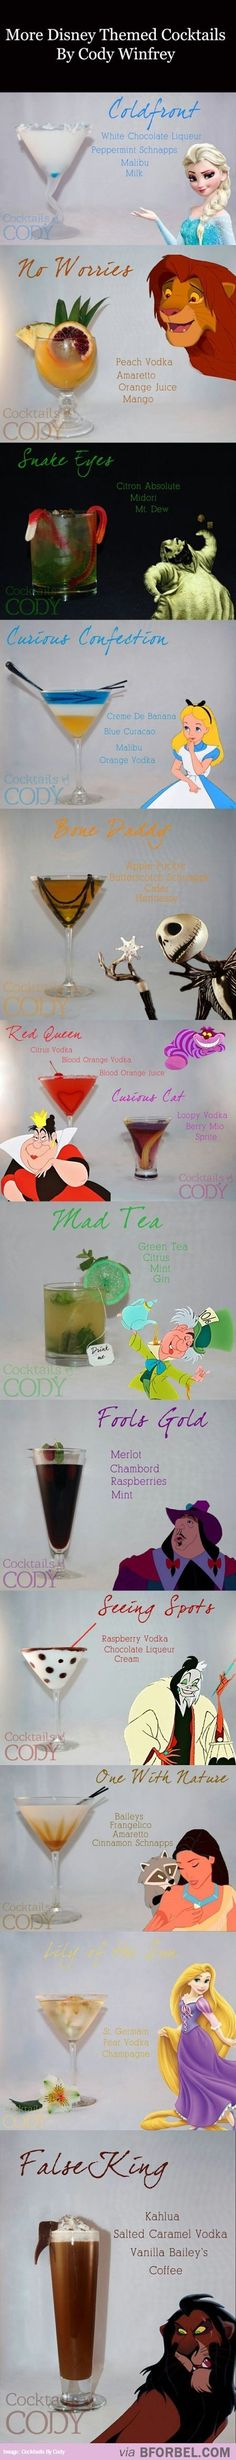 12 More Disney-Themed Cocktails by chelsea